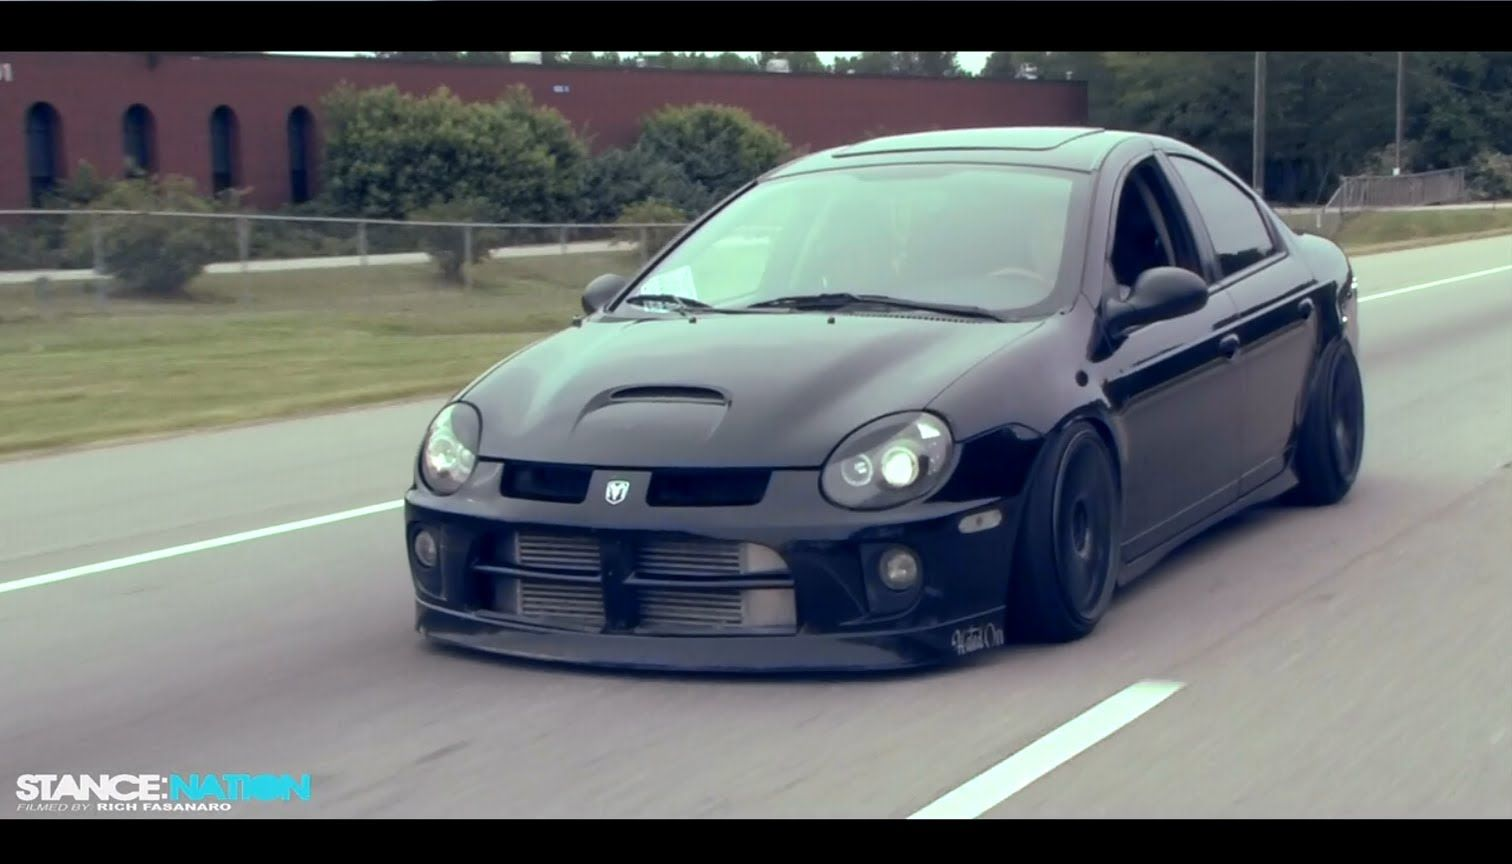 Pin By Jeremy Wright On Good Looking Rides Low Riding Srt4 Neon Dodge Srt 4